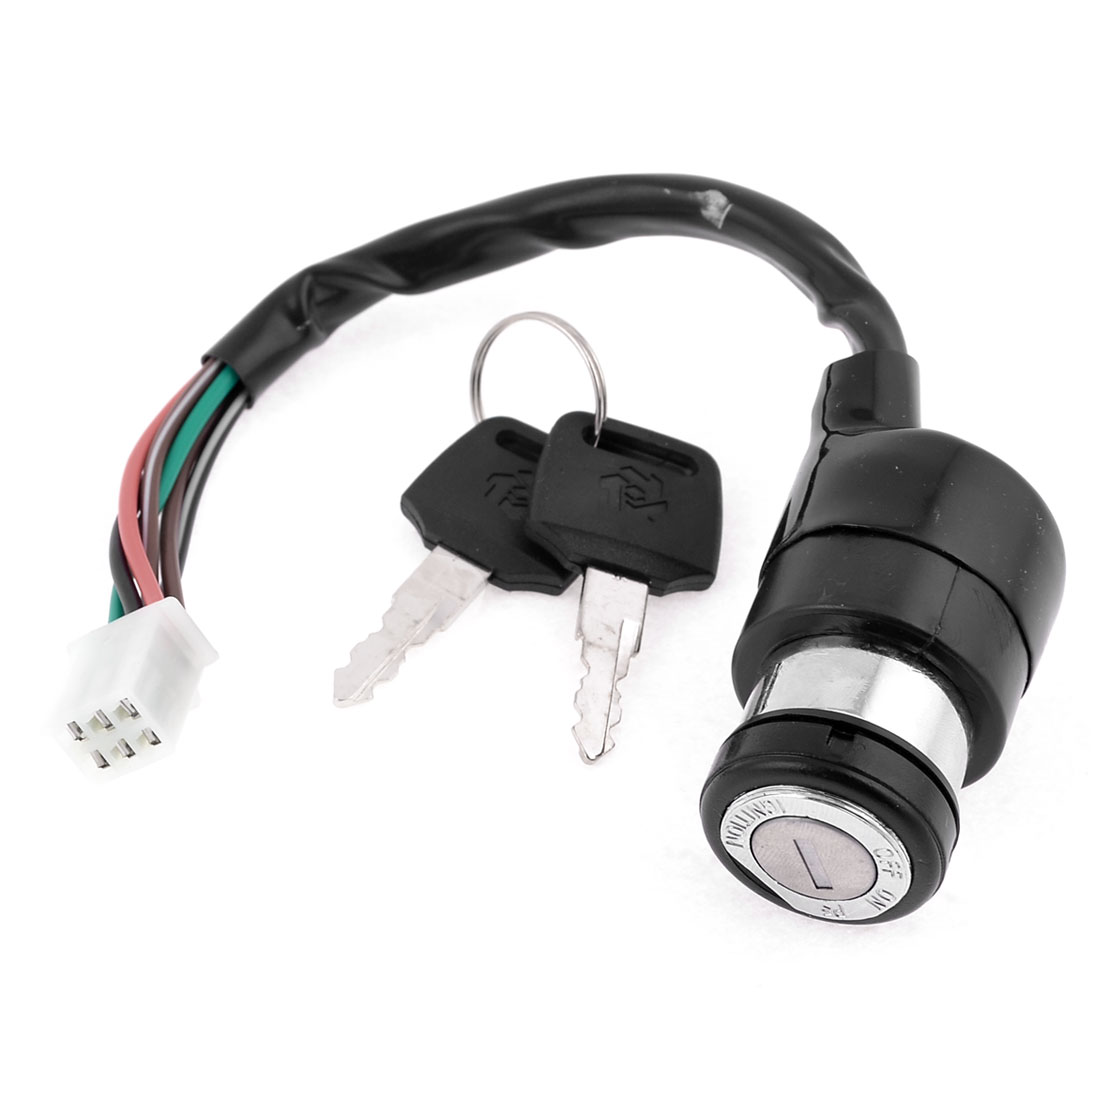 Key Switch 6 Wires Male Connector Moped Electric Motorcycle Bike Lock for GN125